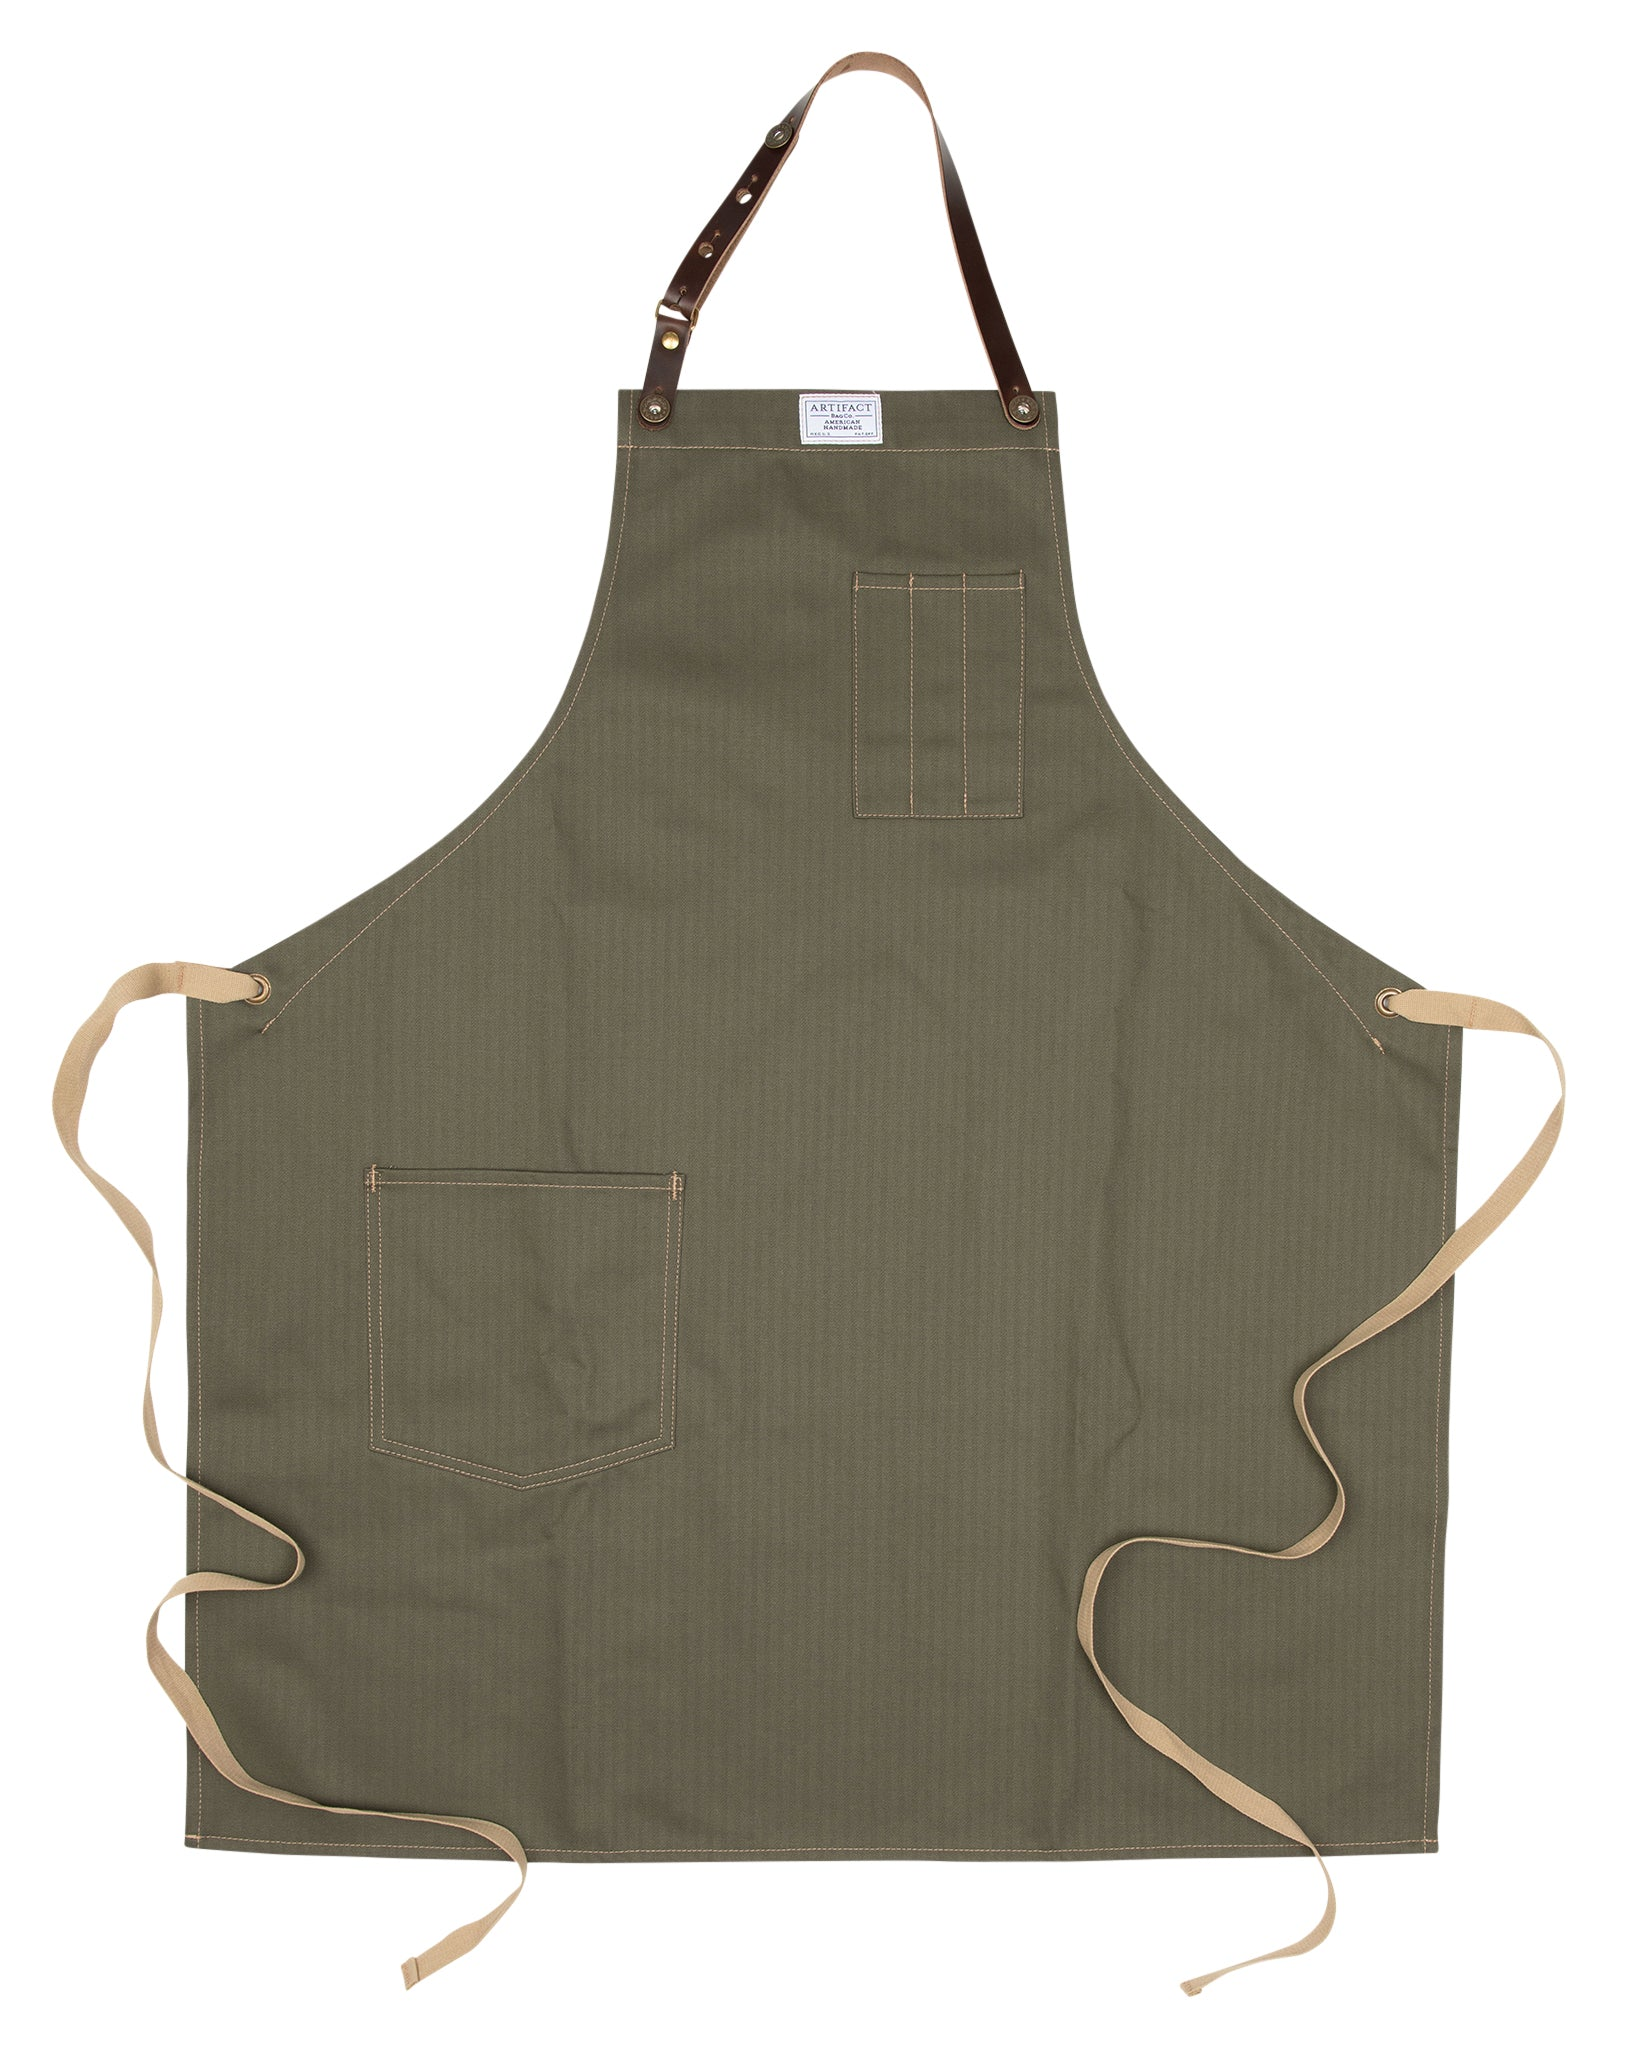 Artifact Olive Green Herringbone Twill Apron w/ Leather Strap - Universal Fit